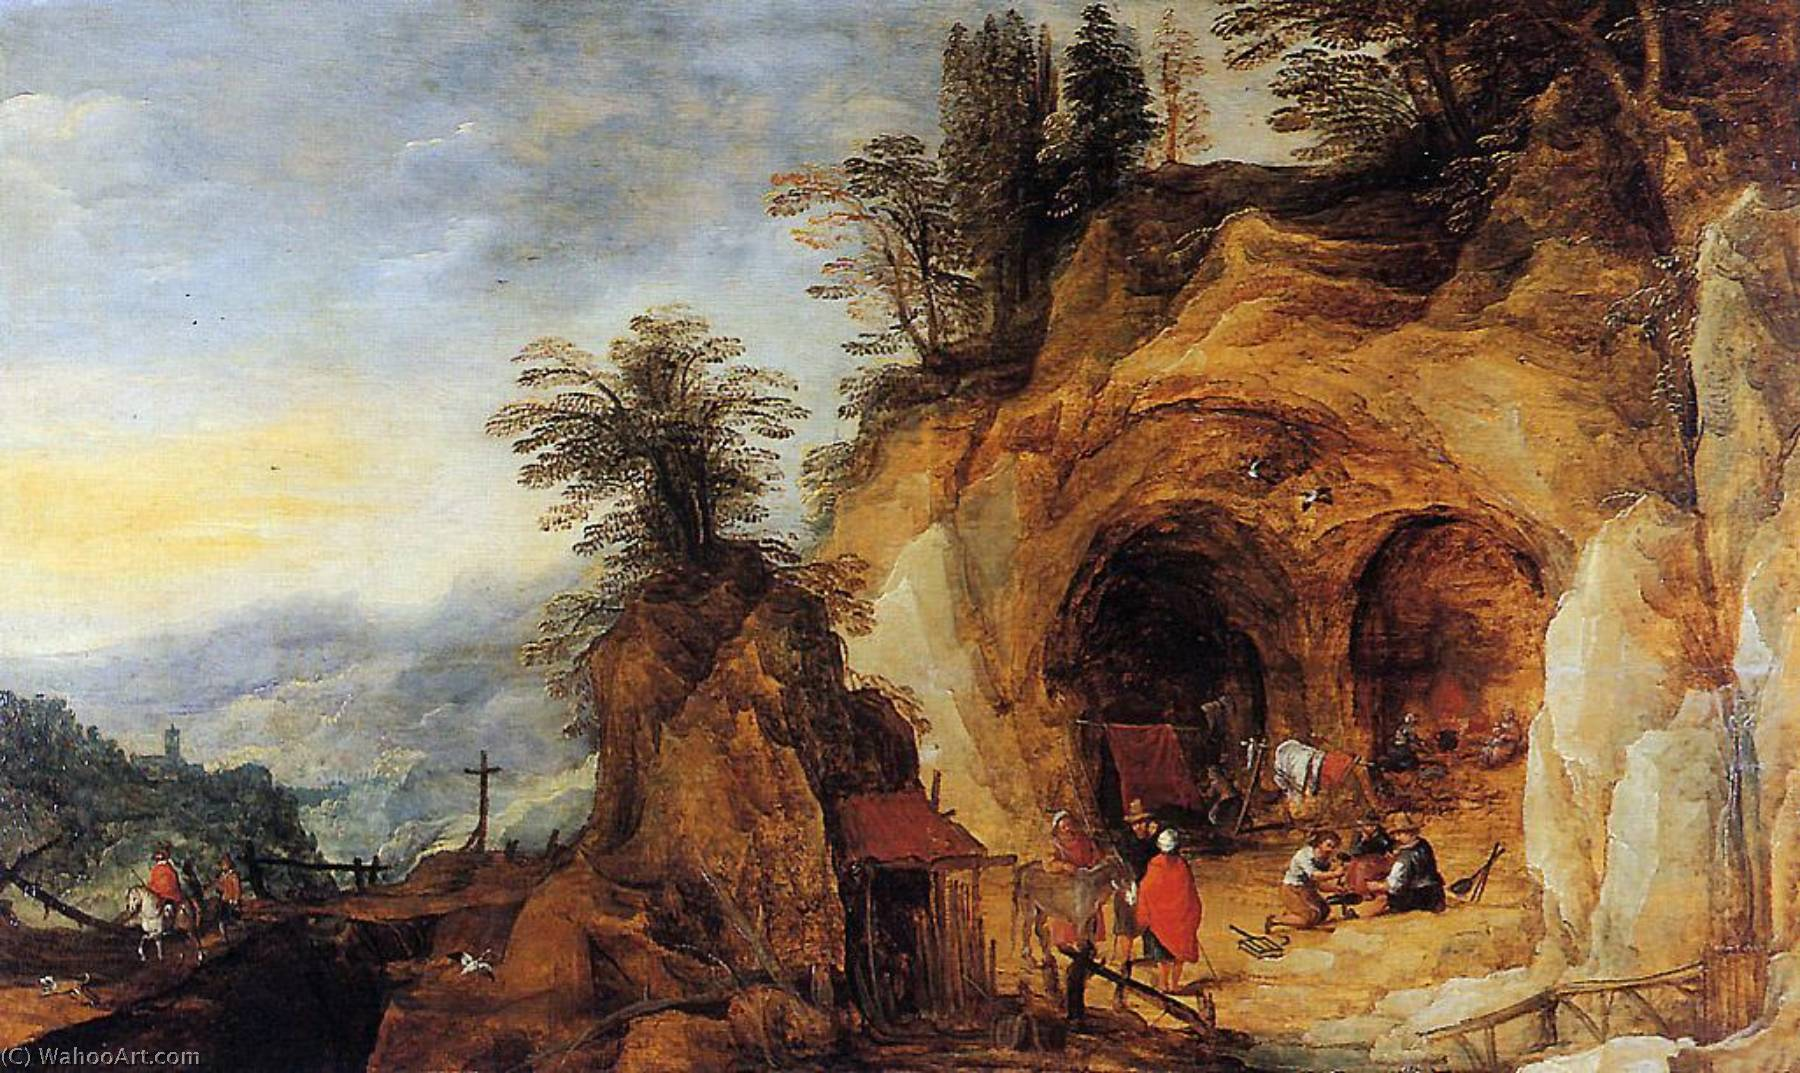 Mountainous Landscape with Caves by Joos De Momper The Younger (1564-1635)